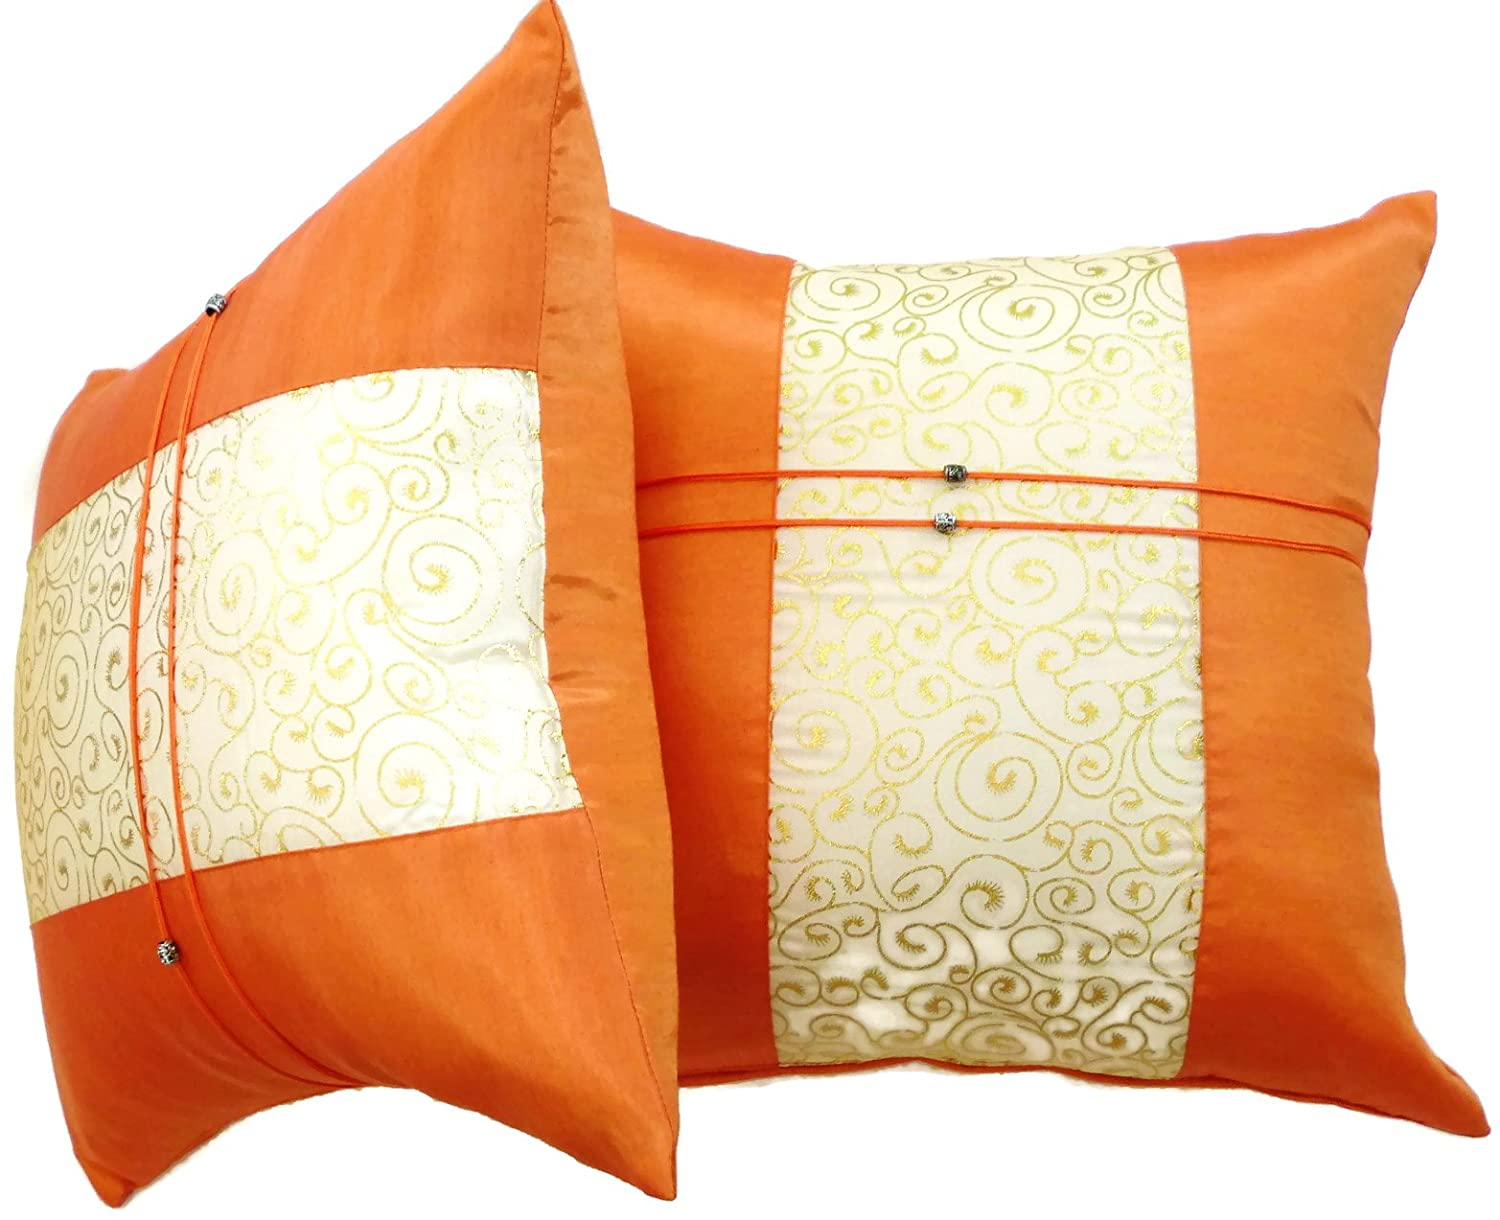 Set of Two Orange Silk Throw Cushion Pillow Covers Gold Print Middle Stripe for Decorative Living Room Bed room Sofa Car Size 16 x16 Inches